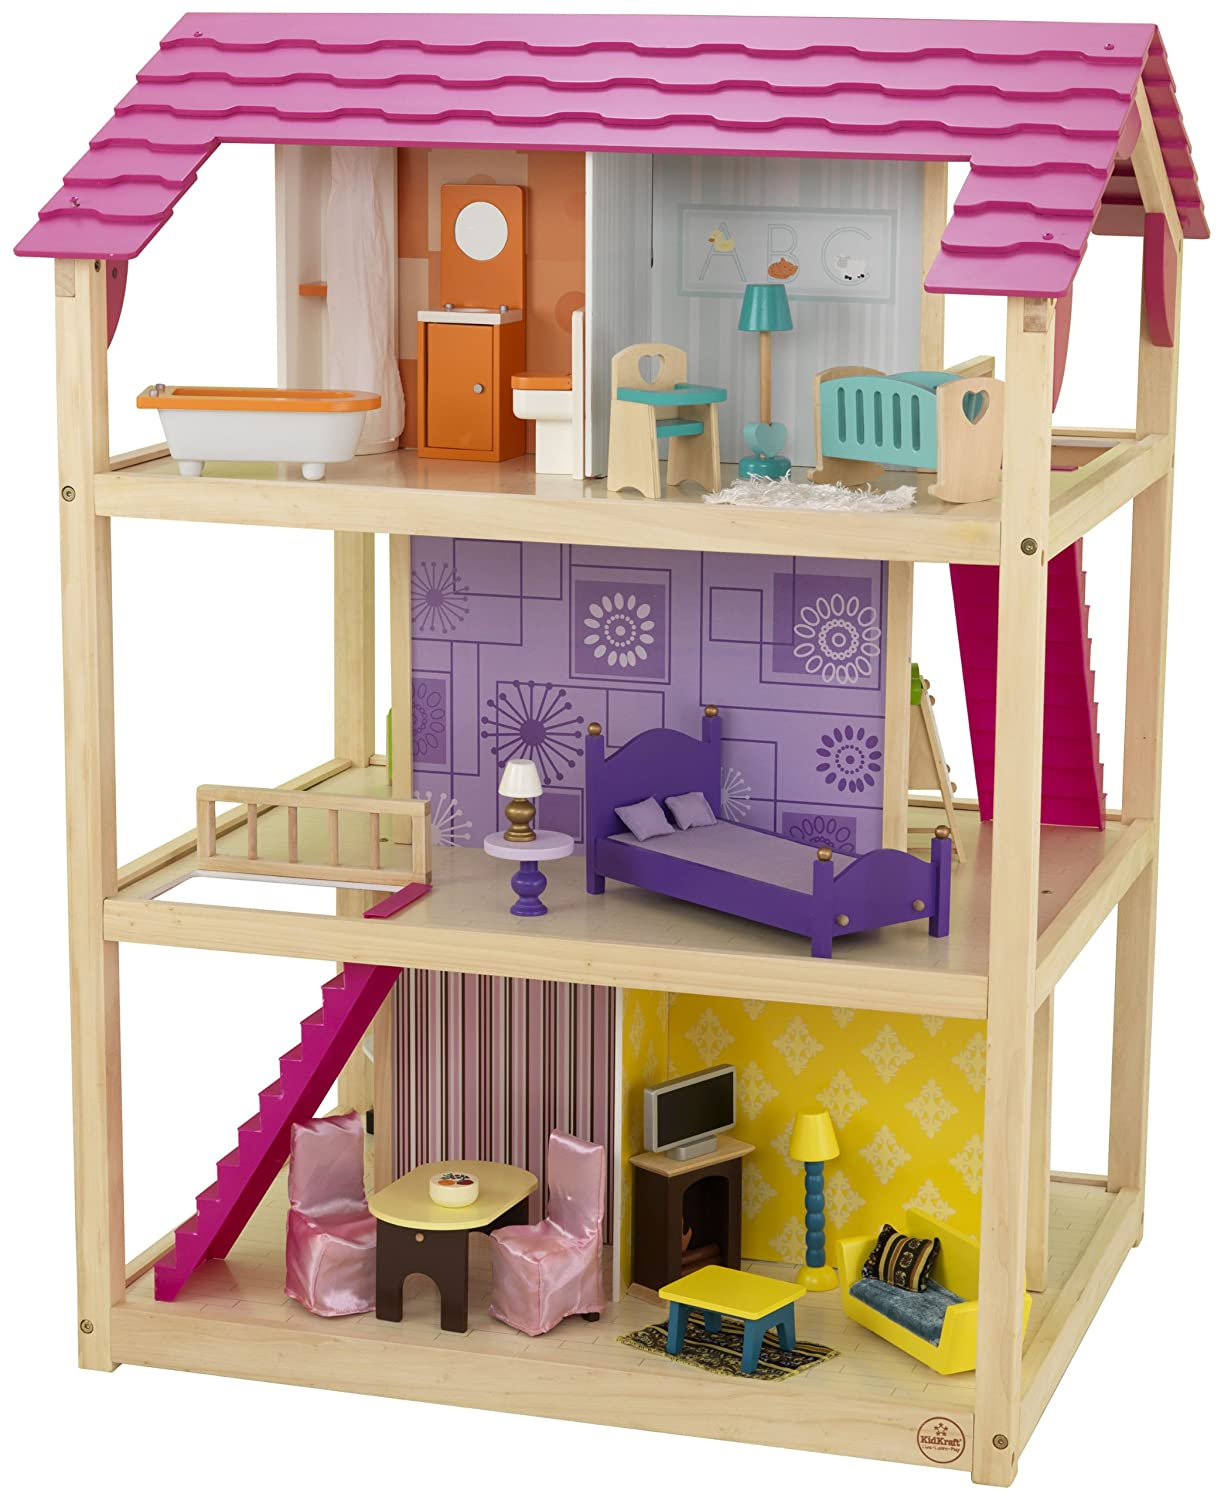 wonderful image of wooden doll house kitchen furniture table princess barbie dolls girls with a87523